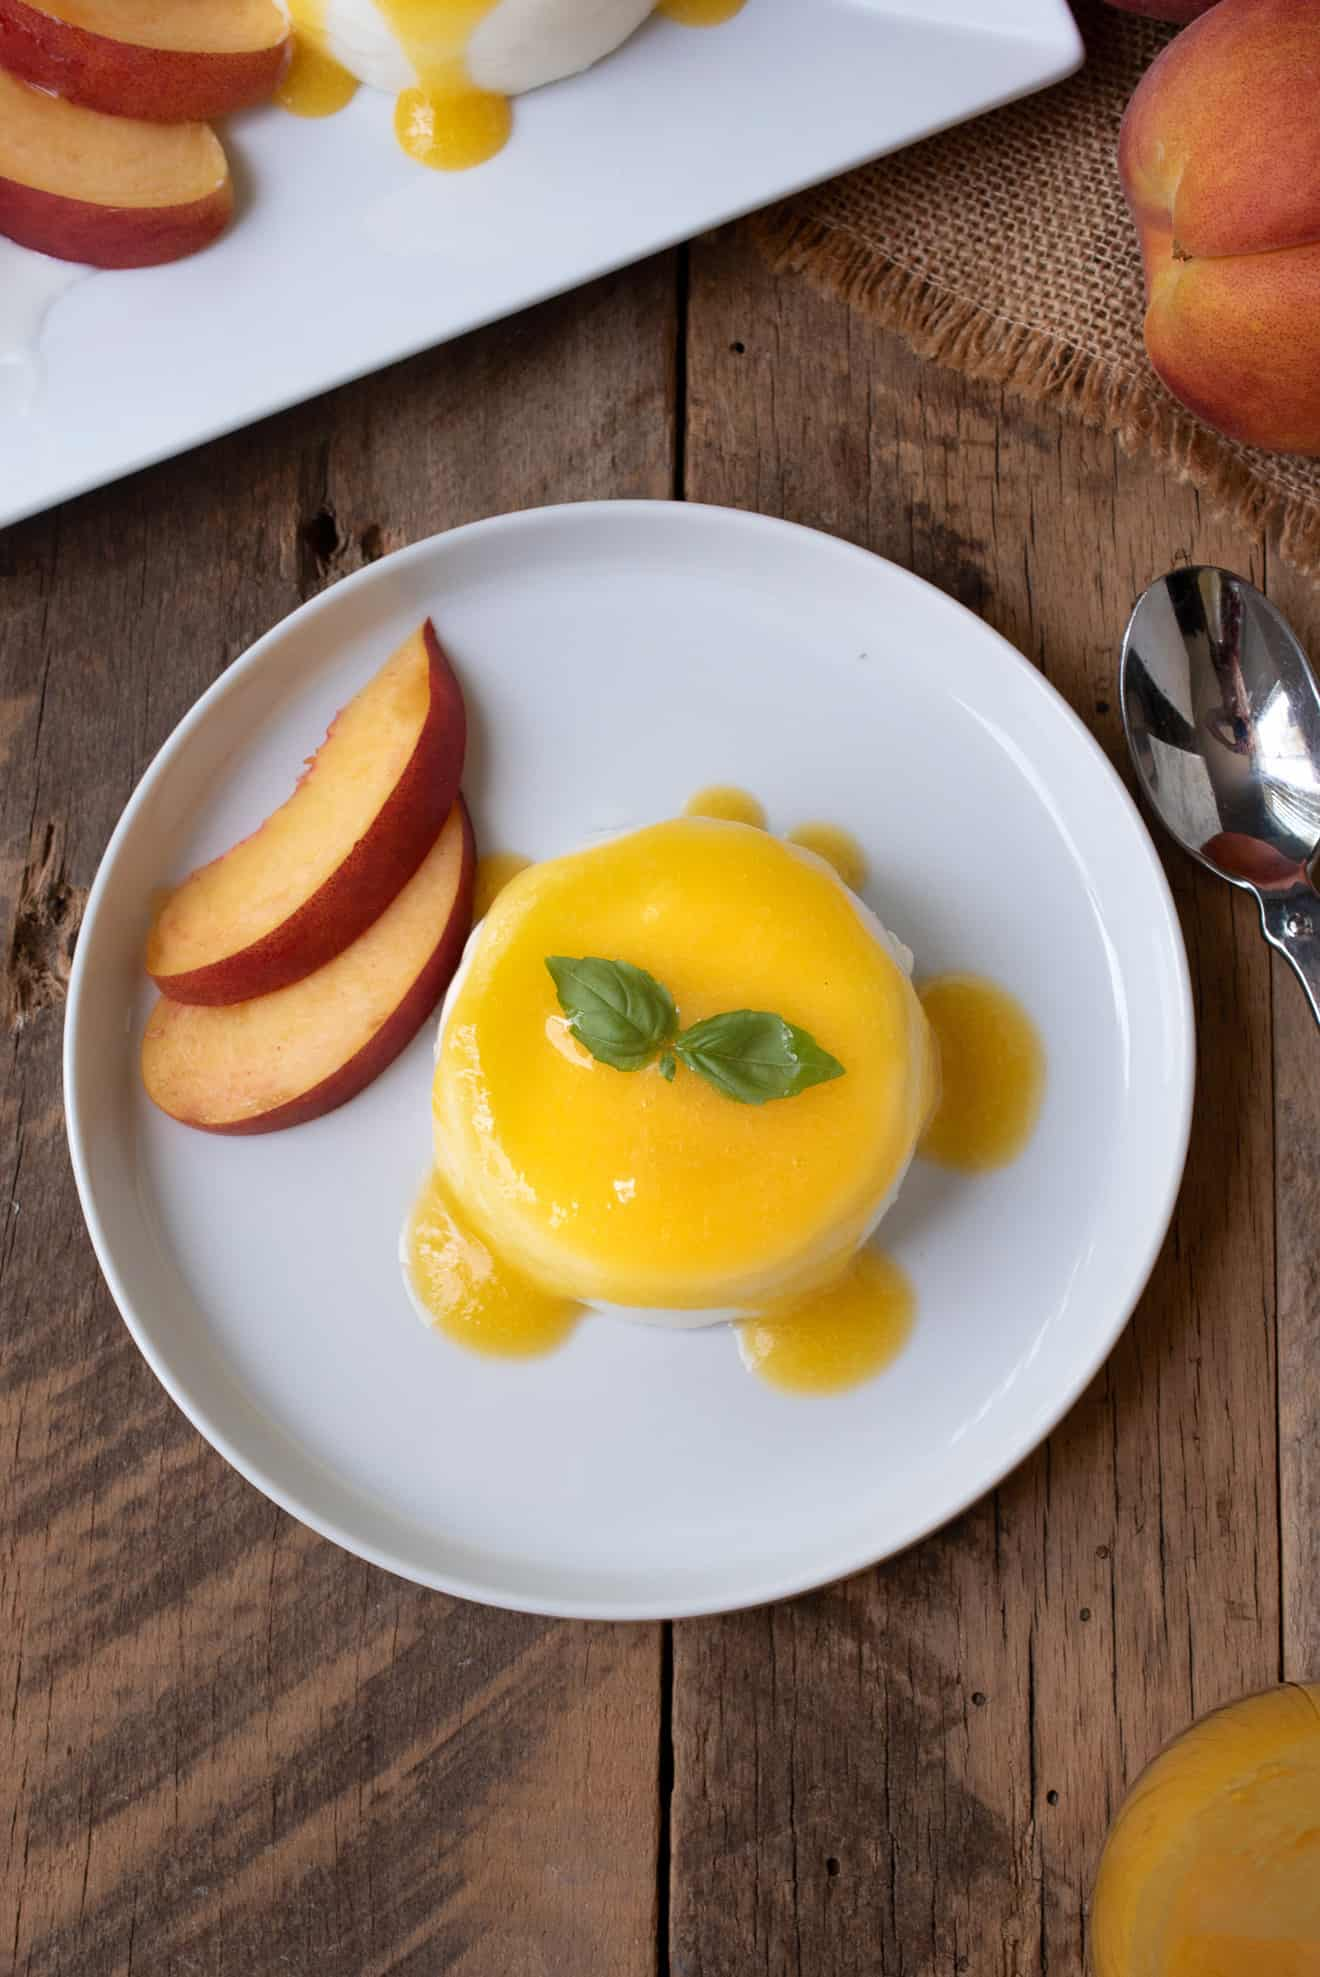 Panna cotta with peach sauce, peach slices and basil leaves